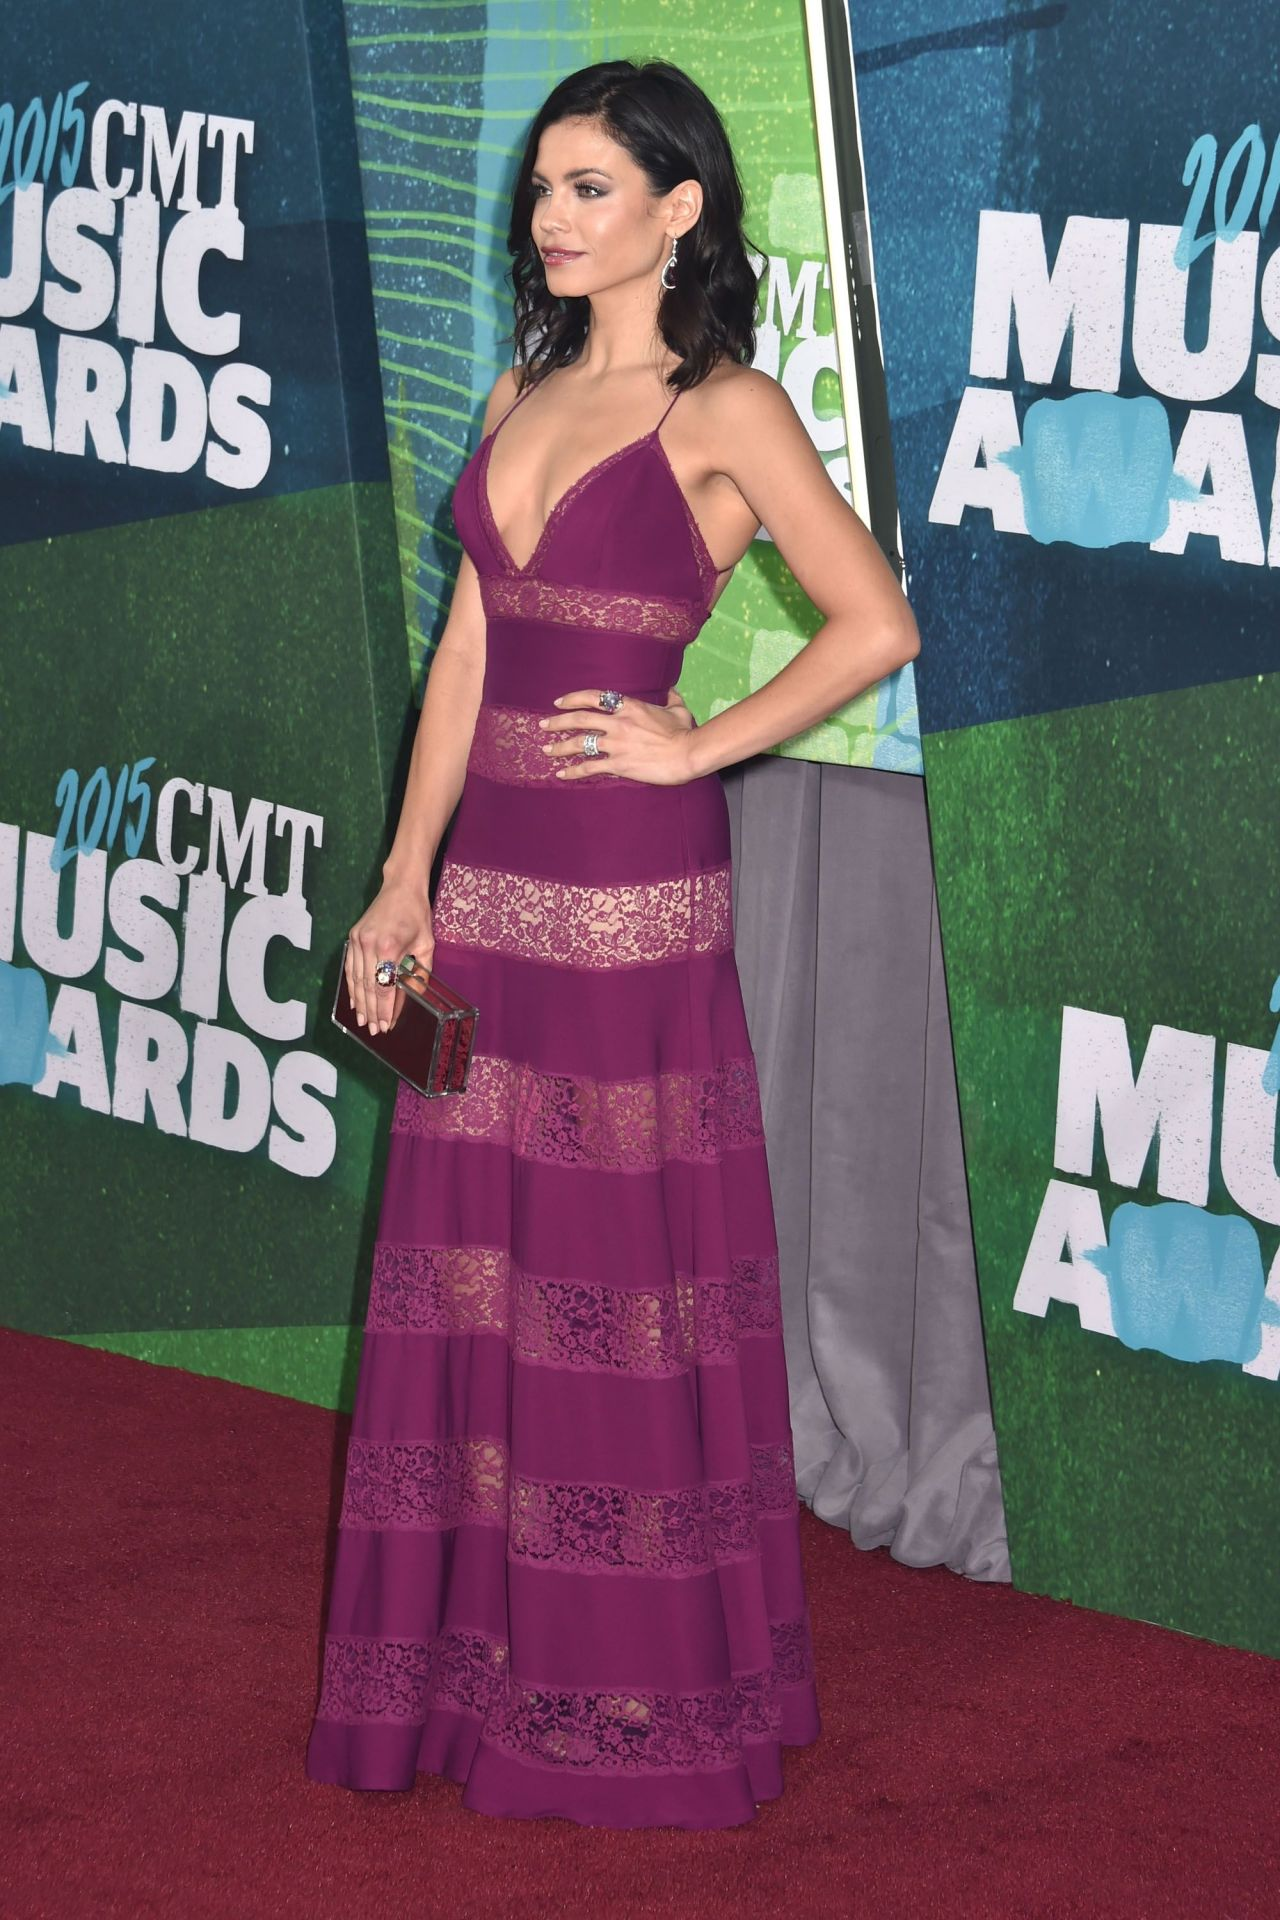 jenna-dewan-tatum-2015-cmt-music-awards-in-nashville_10